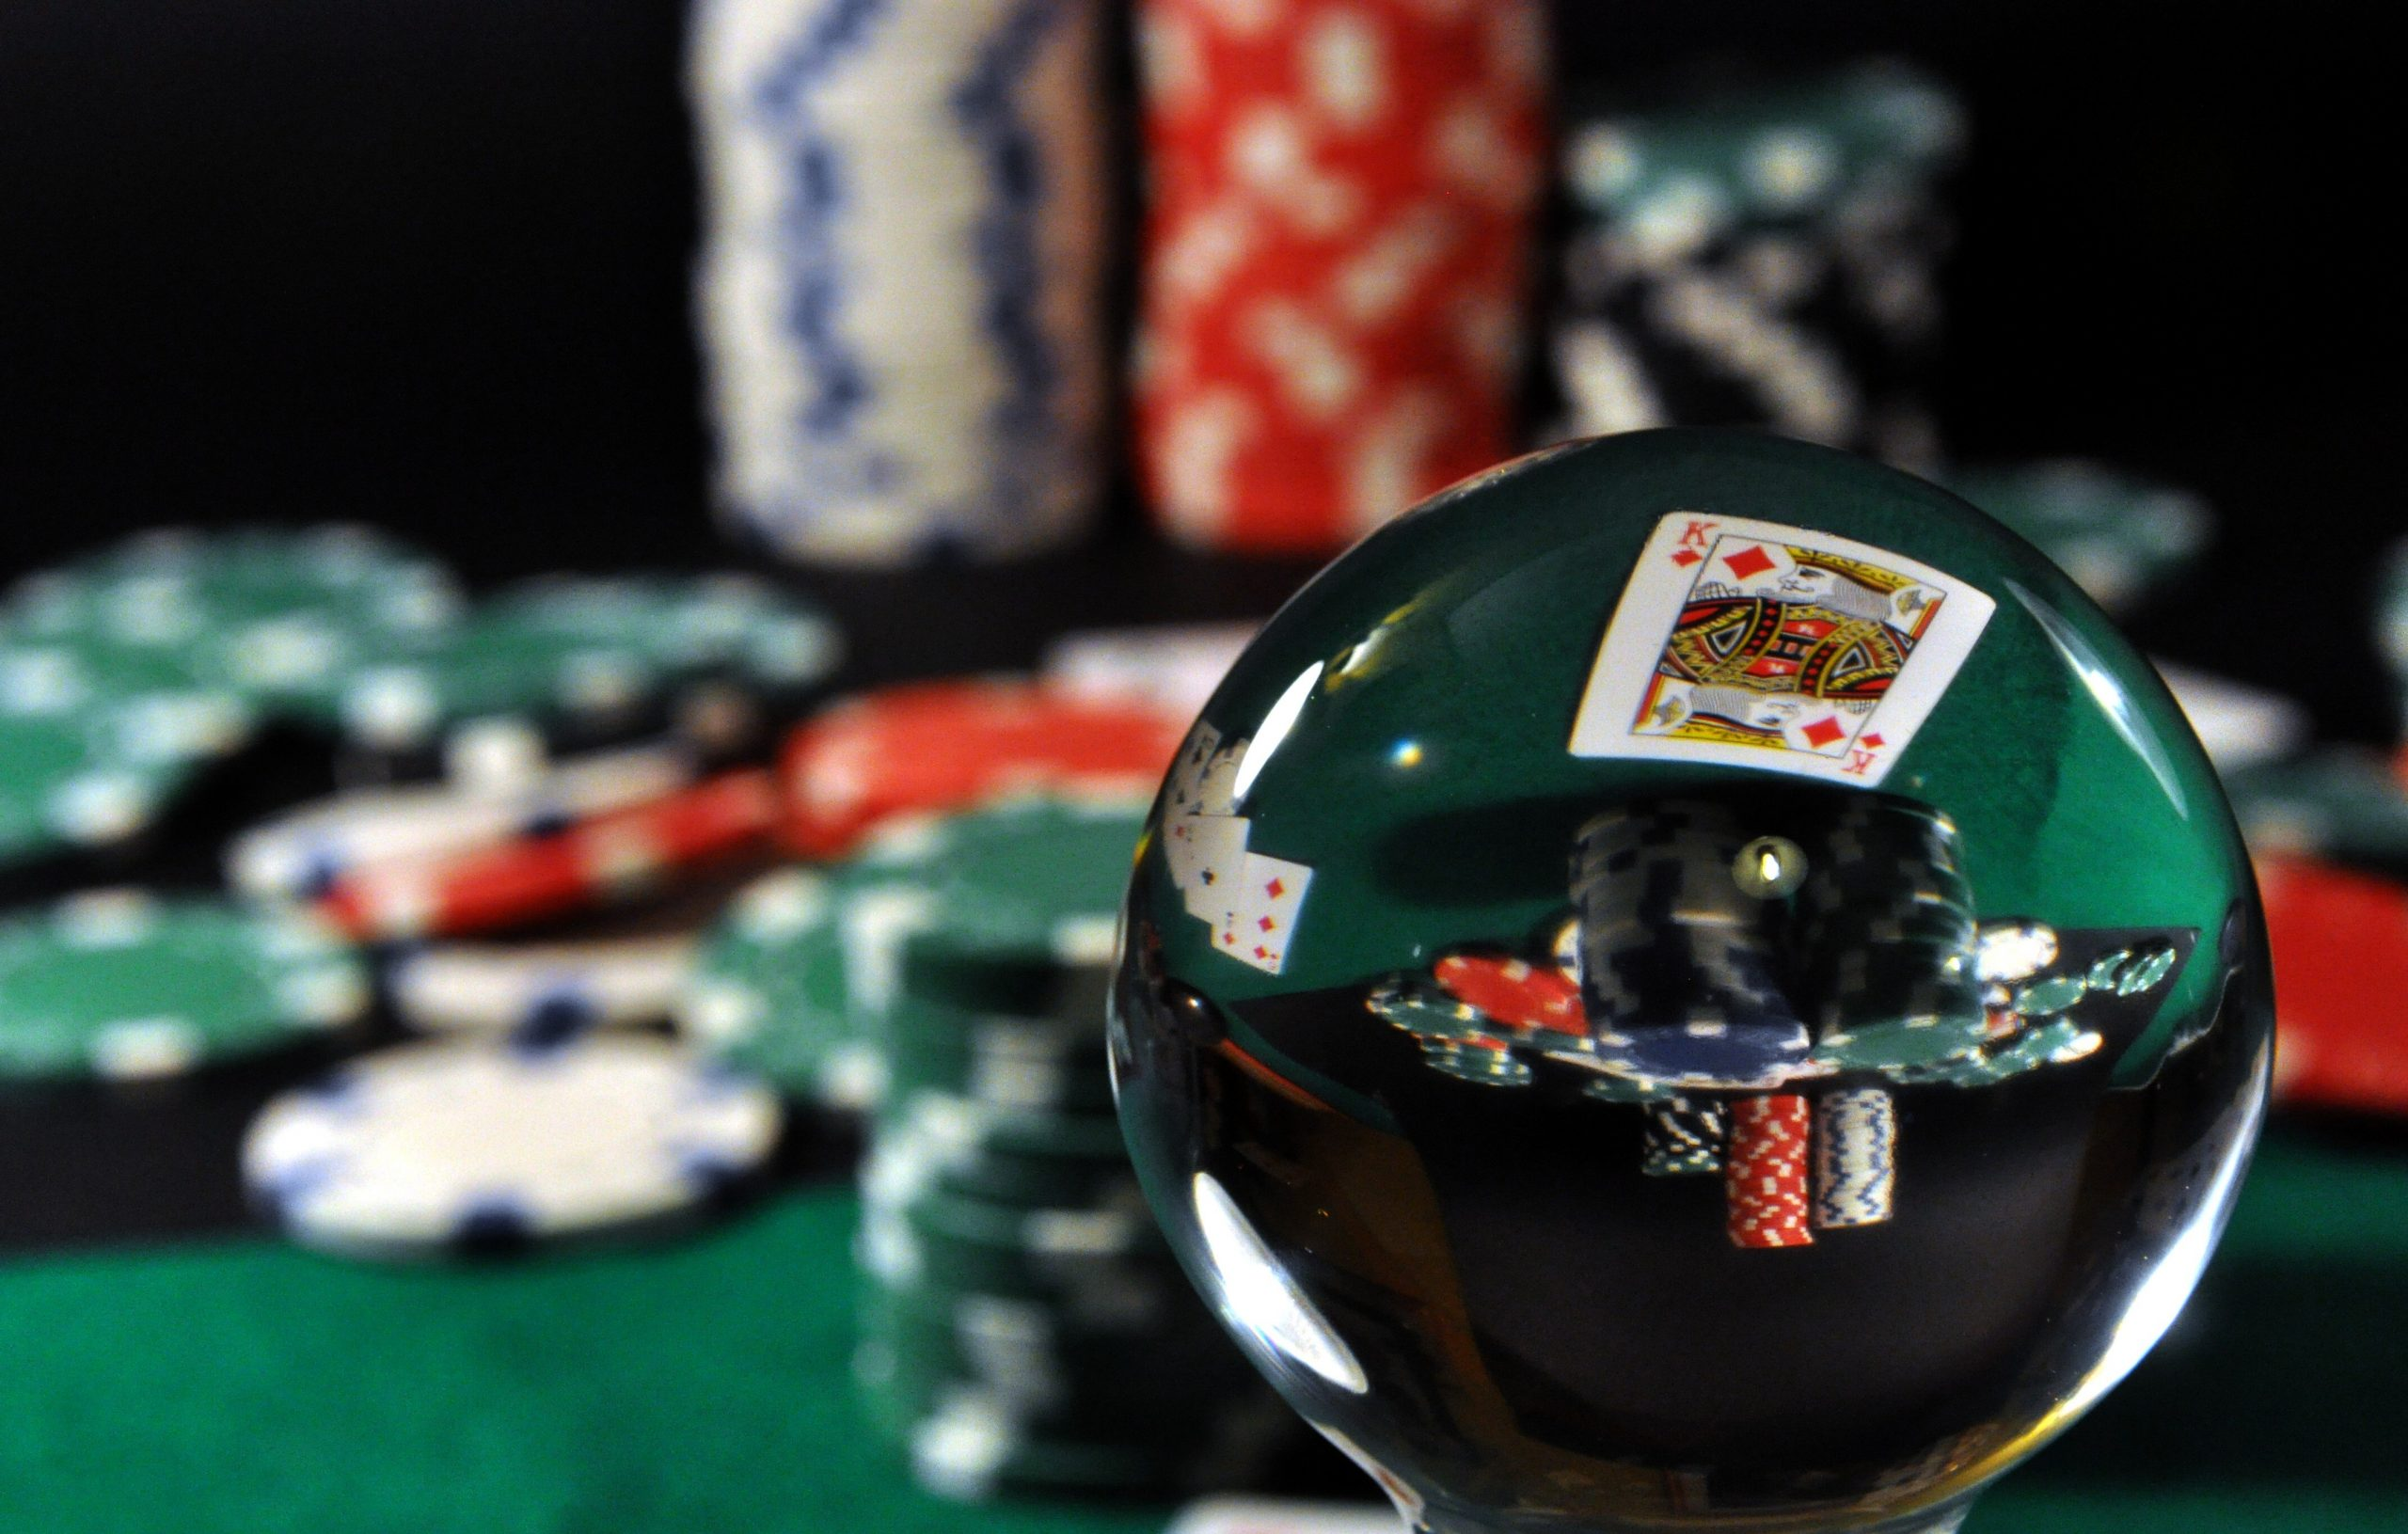 Why Casino Poker Games Are Entertainment